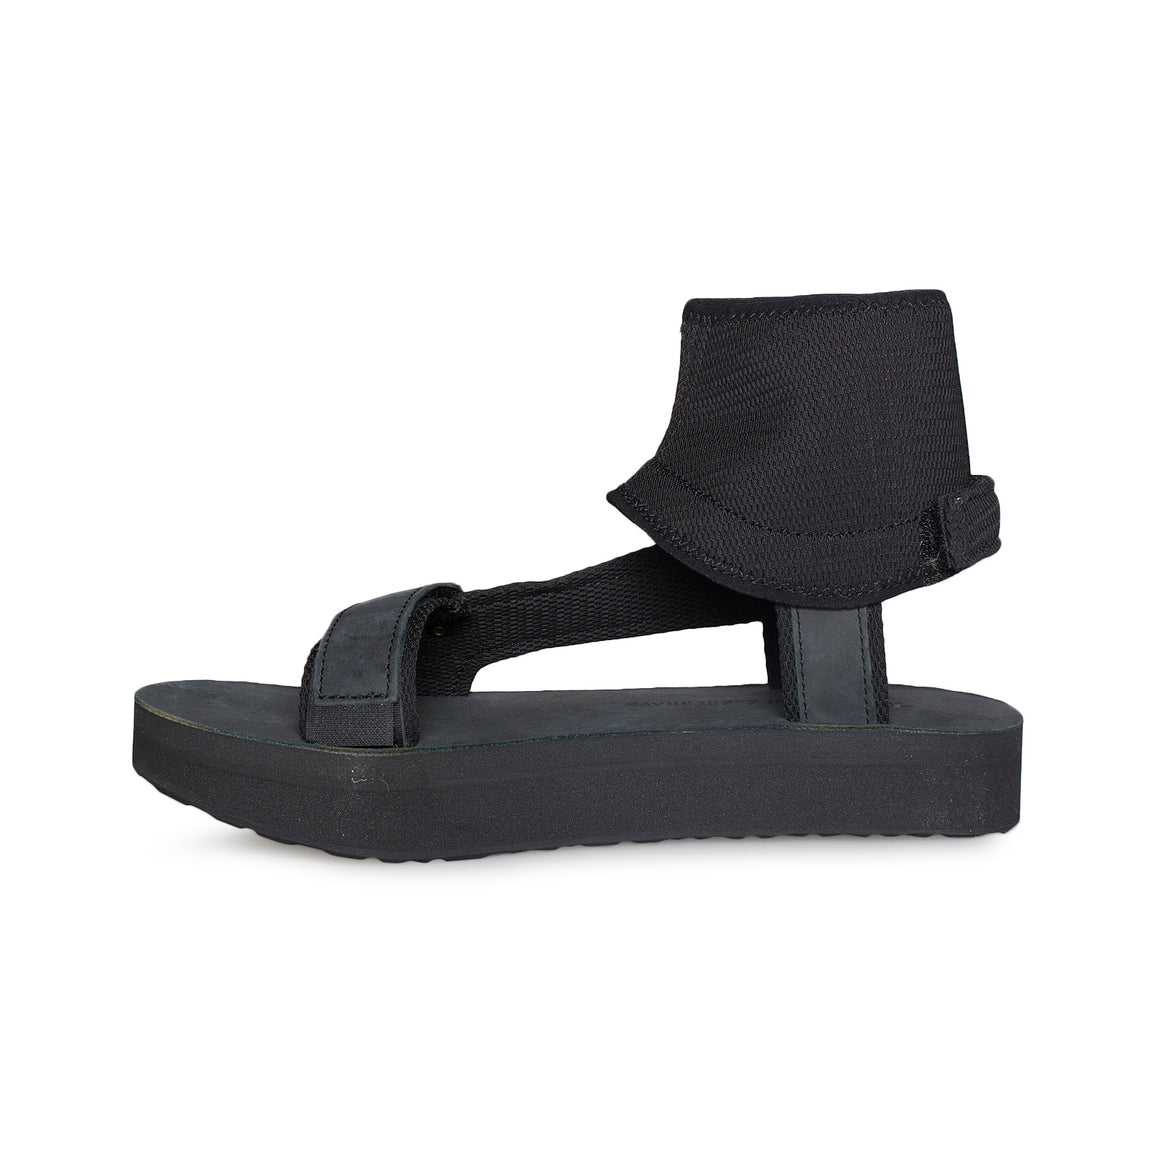 Teva Han Kjobenhavn 2 Black Sandals - Men's